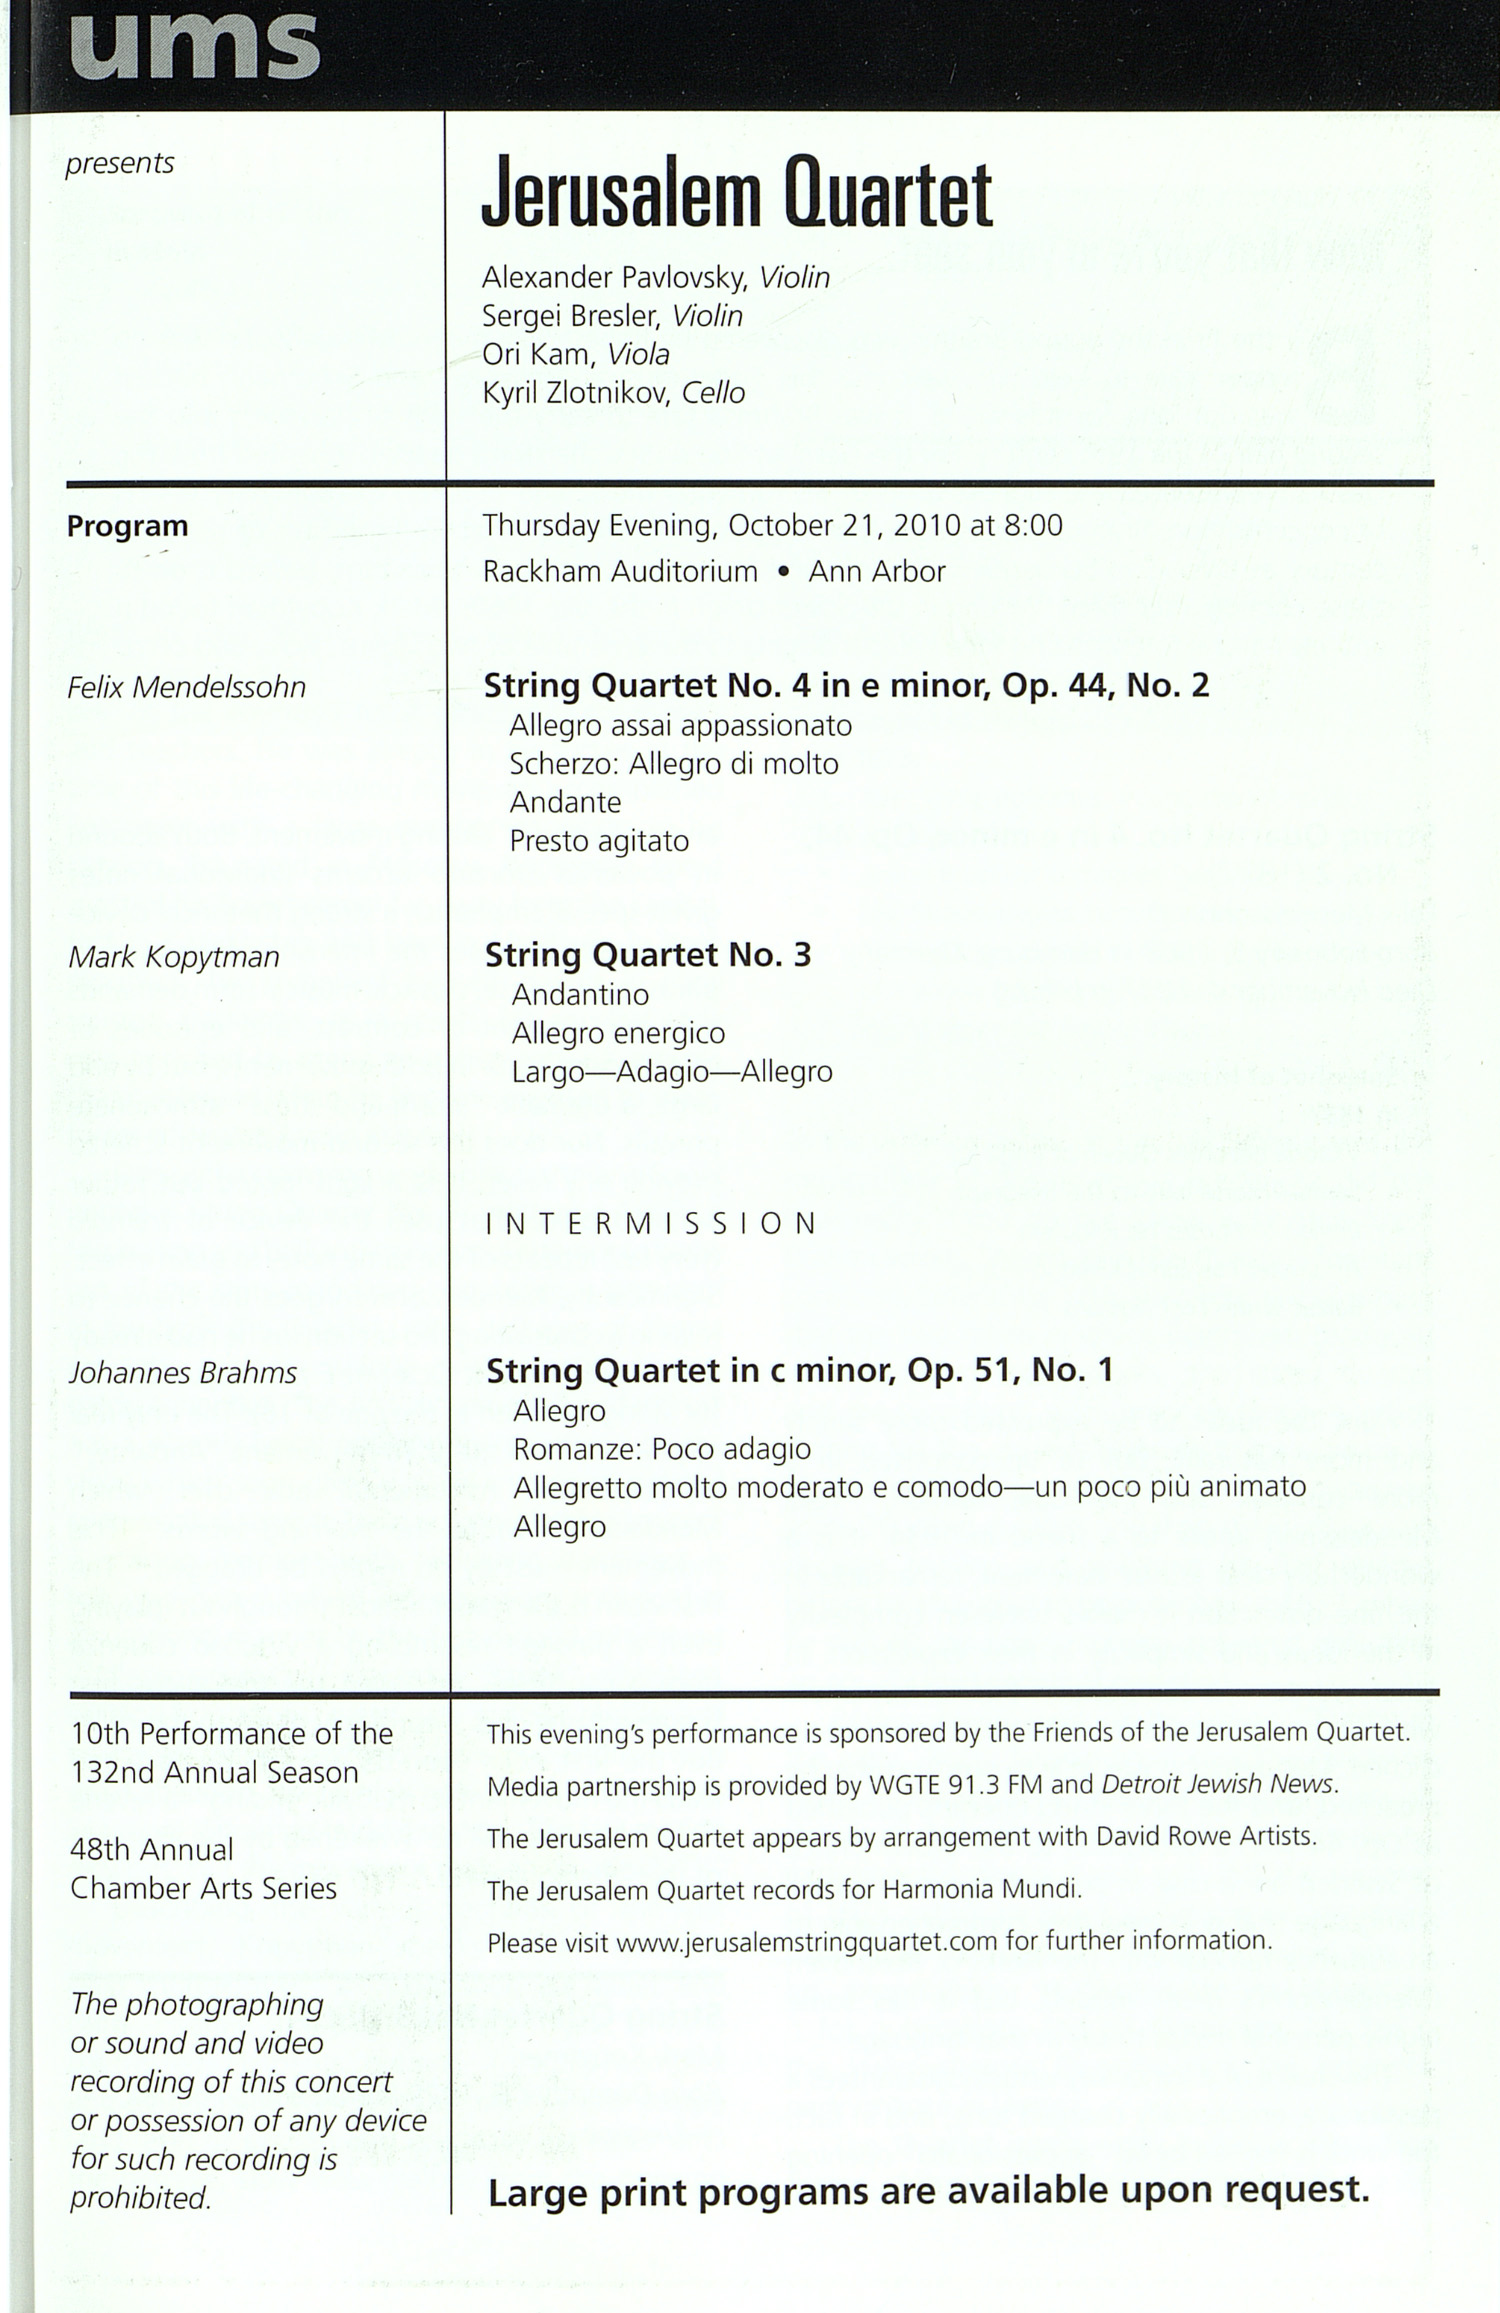 UMS Concert Program, Sunday Oct. 10 To 24: University Musical Society: Fall 2010 - Sunday Oct. 10 To 24 --  image